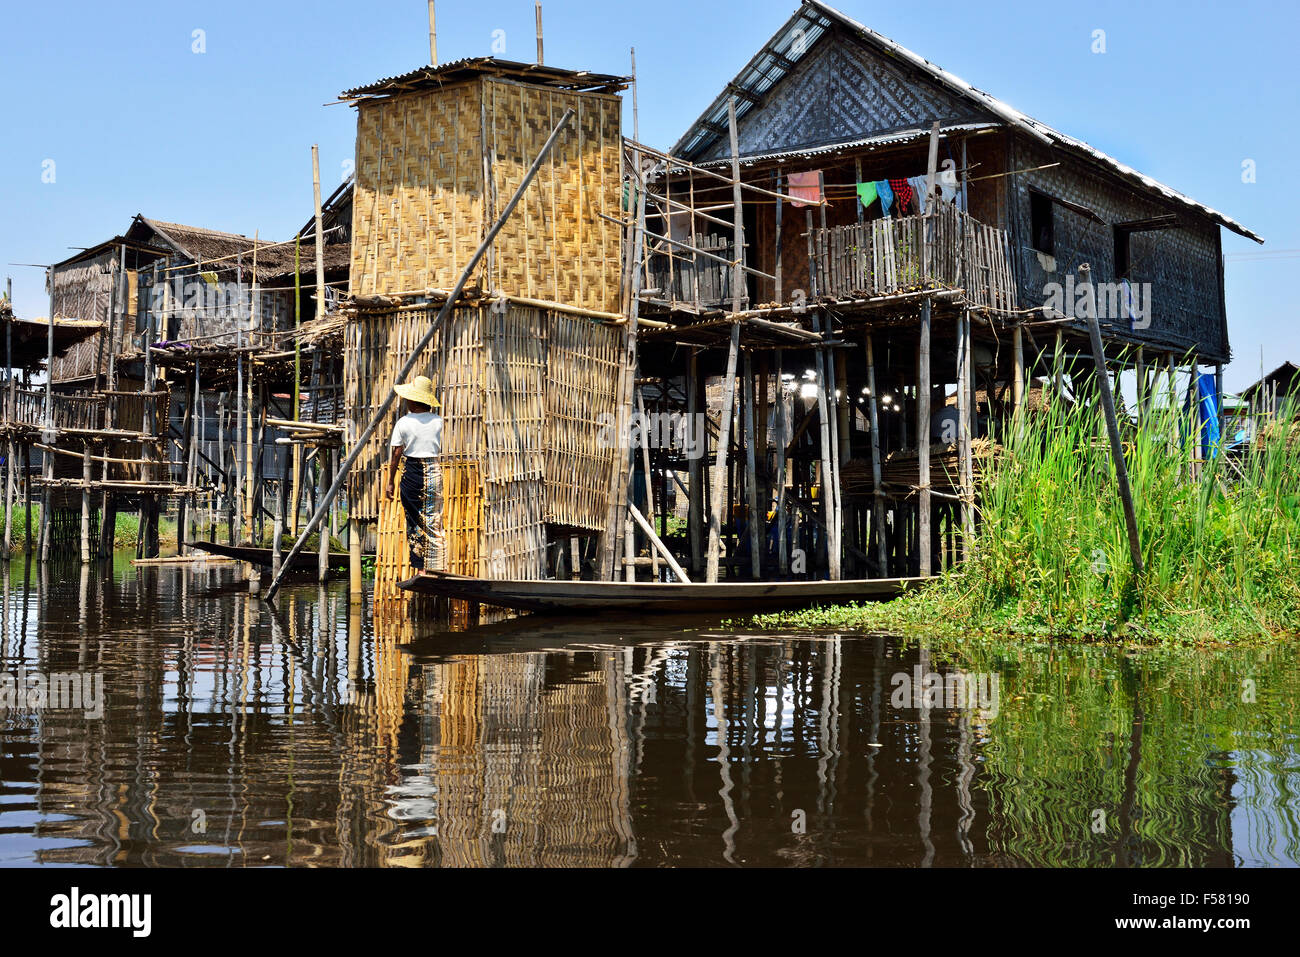 Ethnic minority Intha woman in small boat outside stilt house on Inle Lake,Shan State, Myanmar,(Burma) - Stock Image